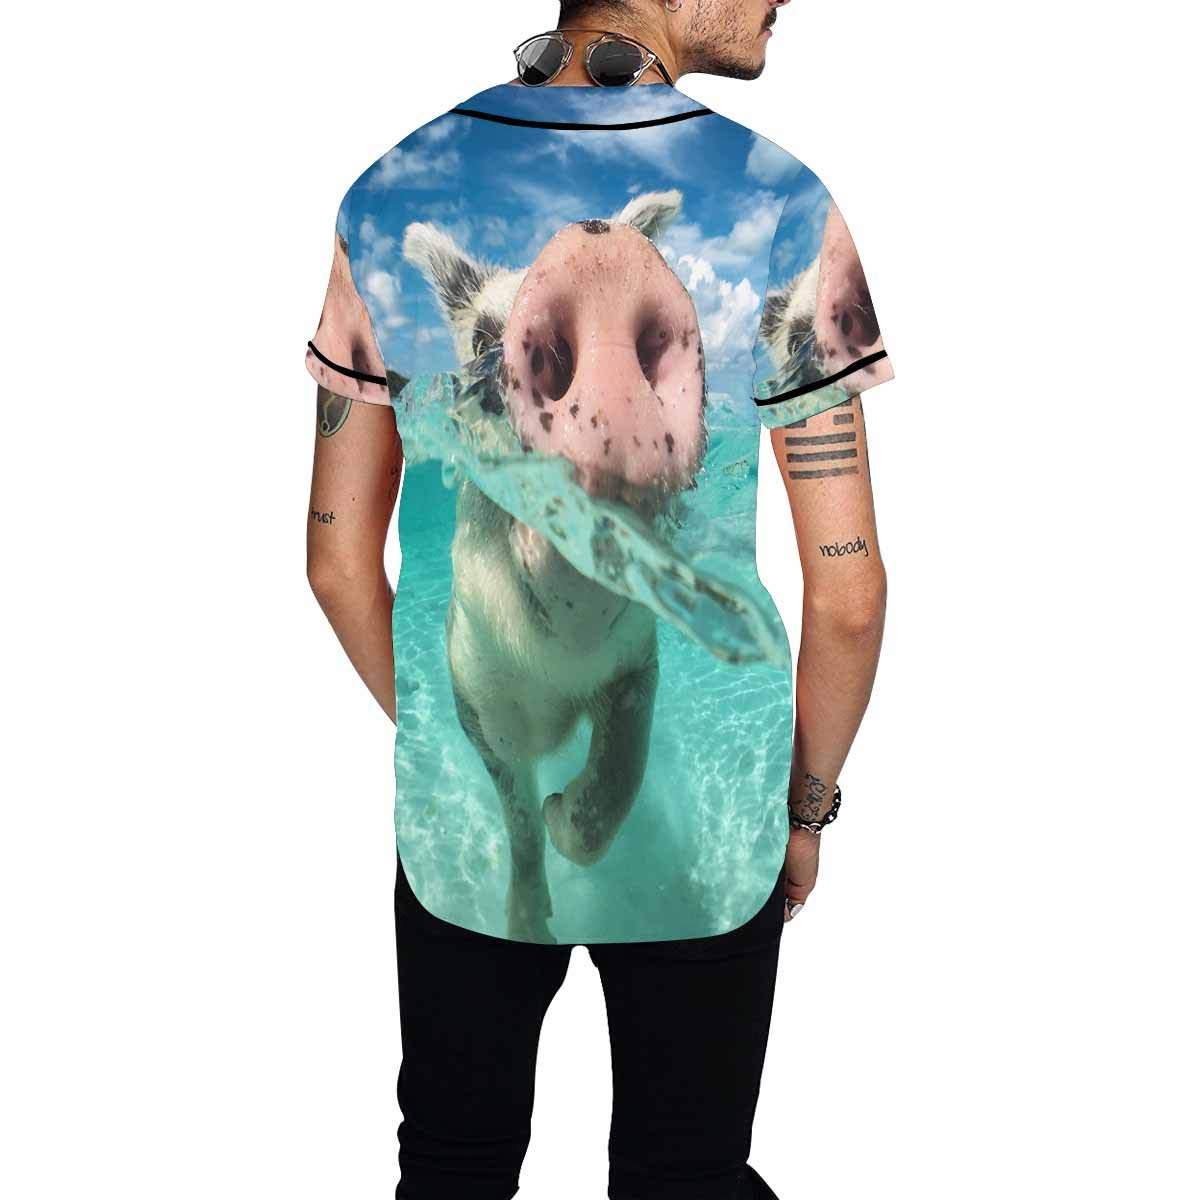 INTERESTPRINT Baseball Jersey Funny Wild Swimming Pig on Big Majors Cay in The Water